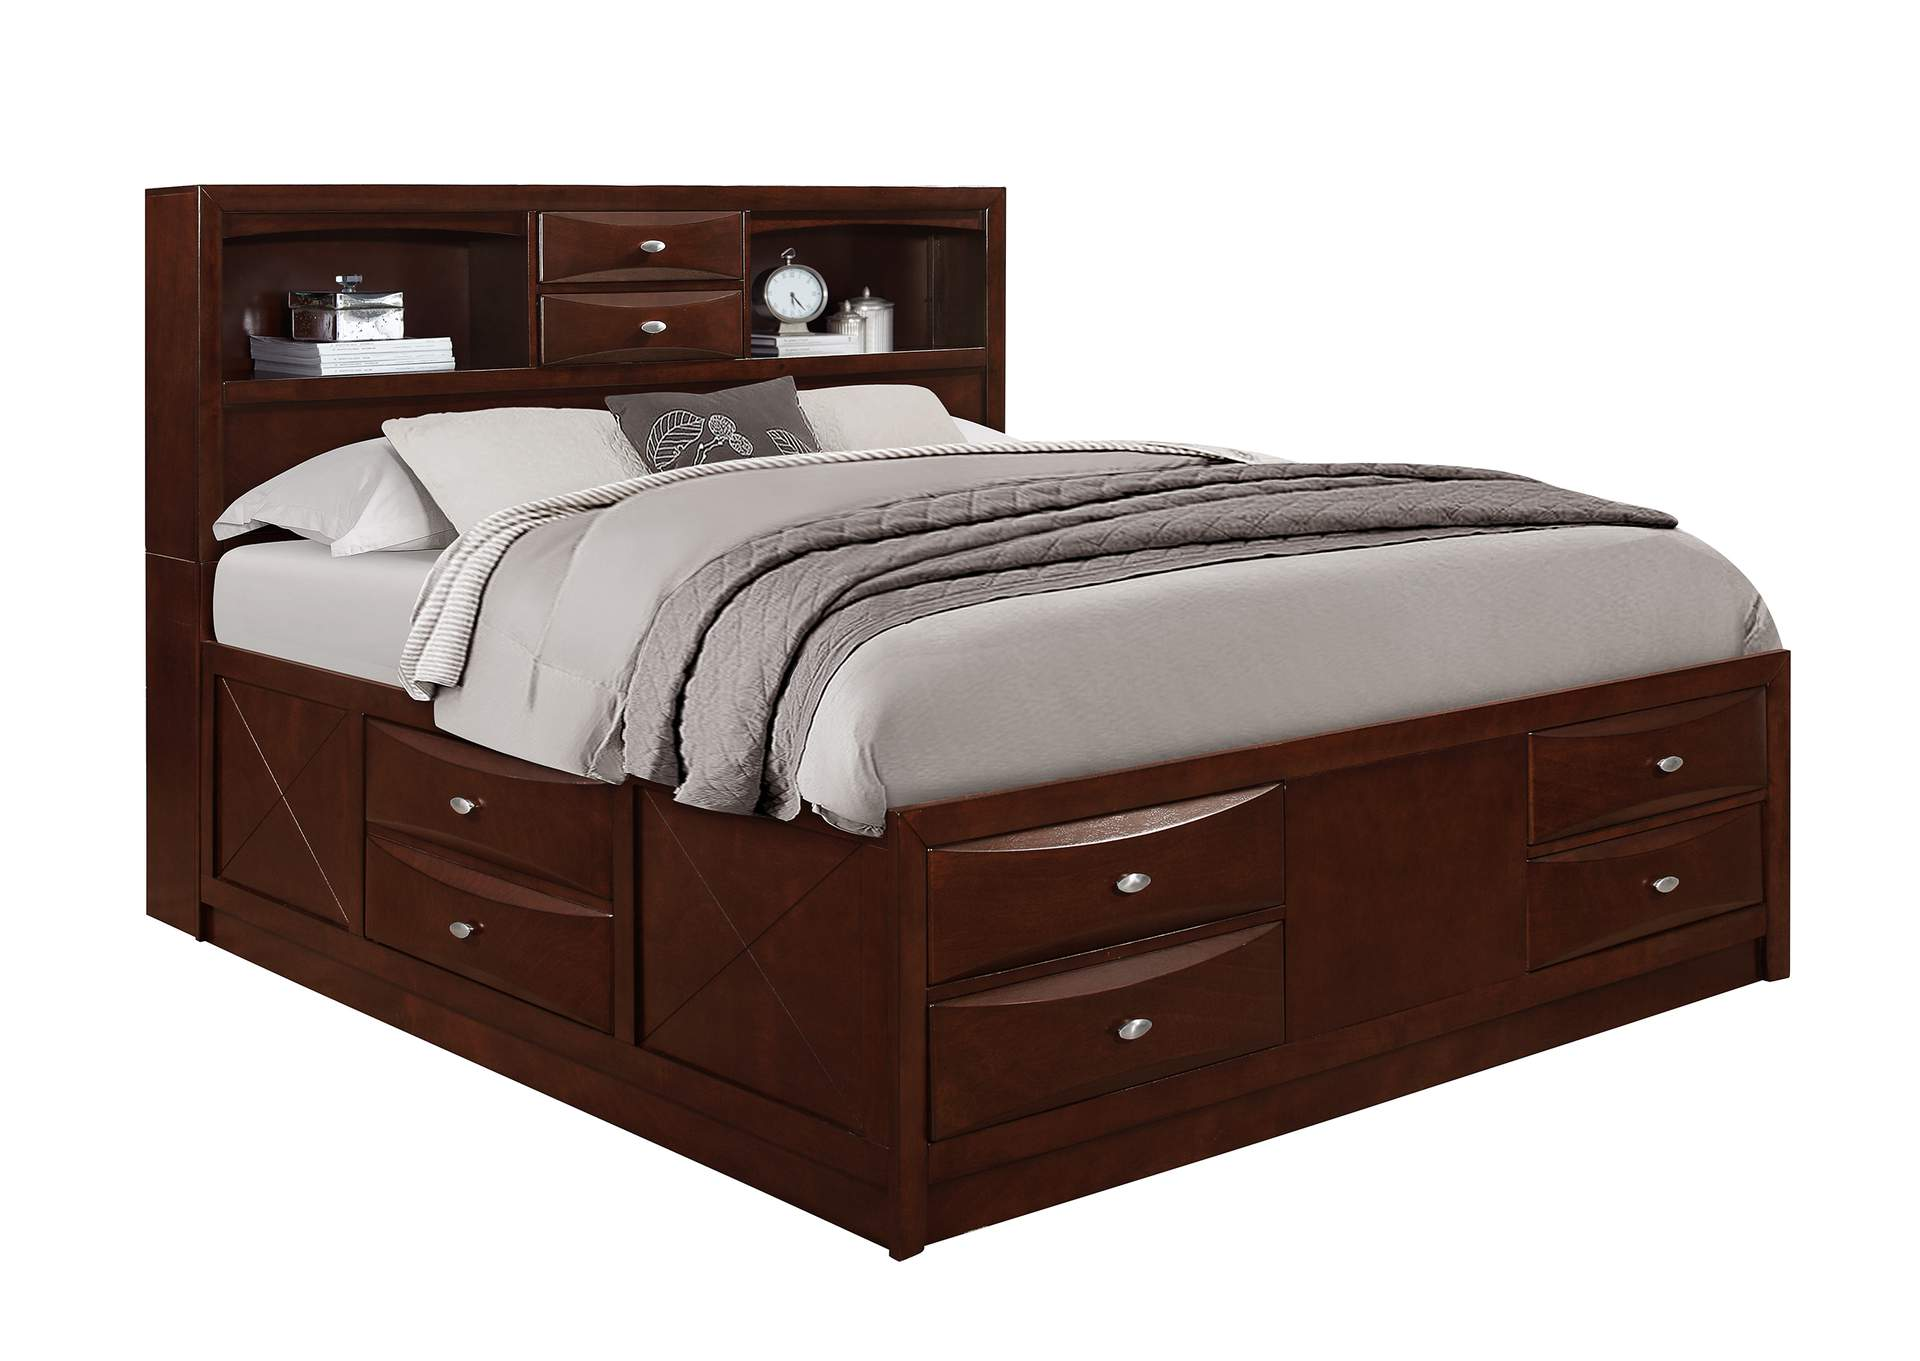 Linda Merlot King Bed,Global Furniture USA